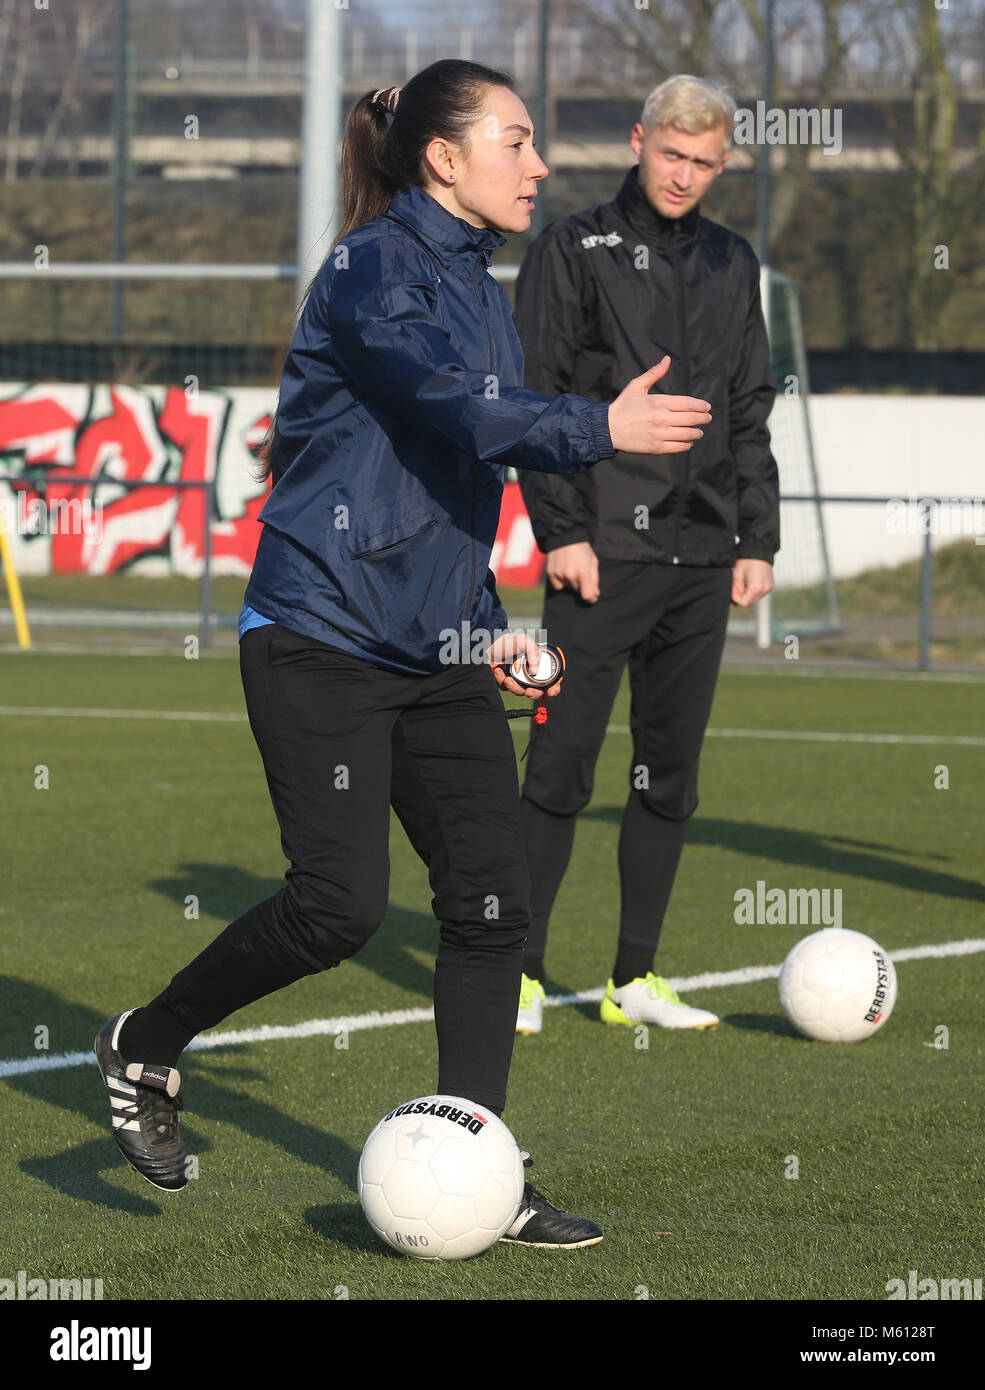 20 February 2018, Germany, Oberhausen: Duygu Erdogan (L), assistant coach of soccer club Rot-Weiss Oberhausen, supervises Stock Photo